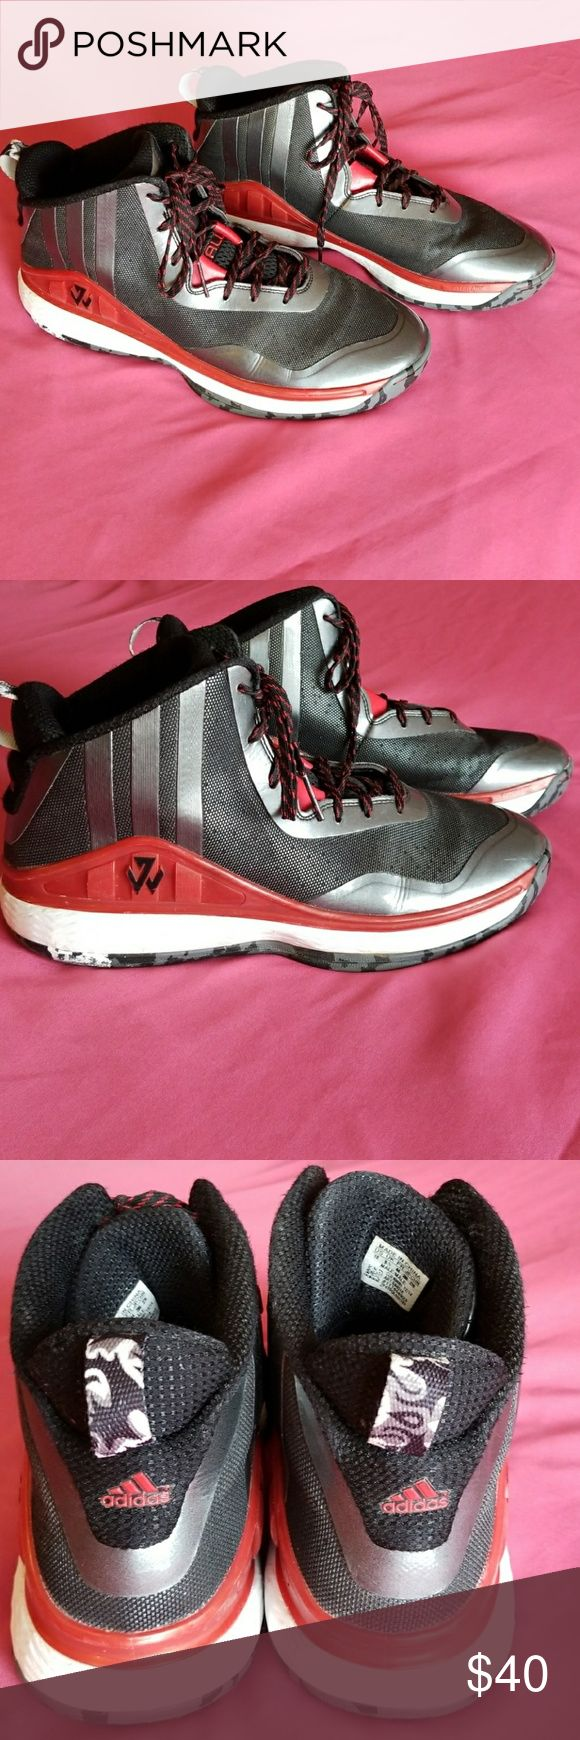 Adidas John Wall basketball shoes Adidas John Wall basketball shoes very gently worn for one season on the basketball court. Size 8.5 adidas Shoes Athletic Shoes